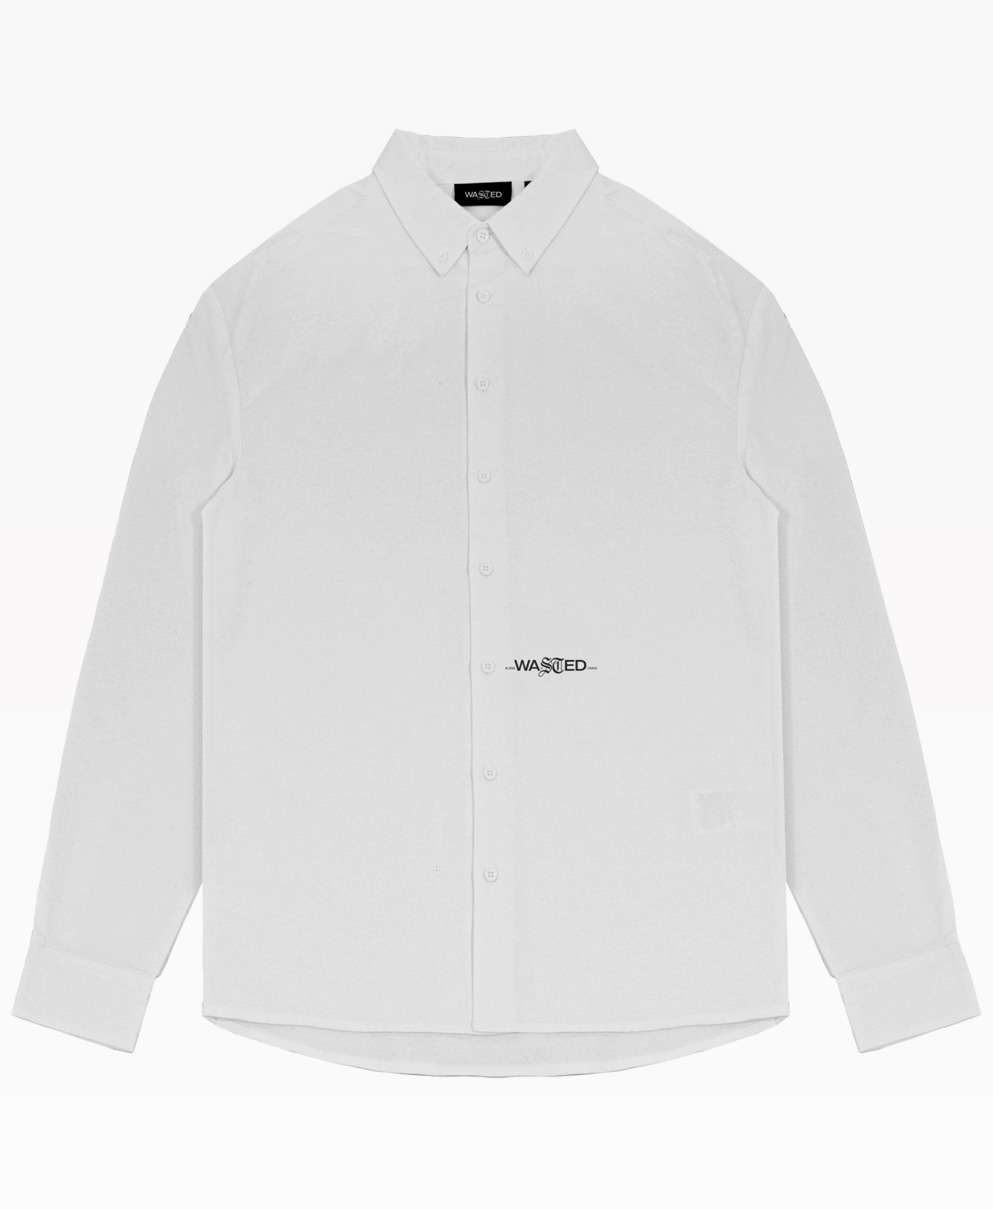 Wasted Signature Shirt White Front